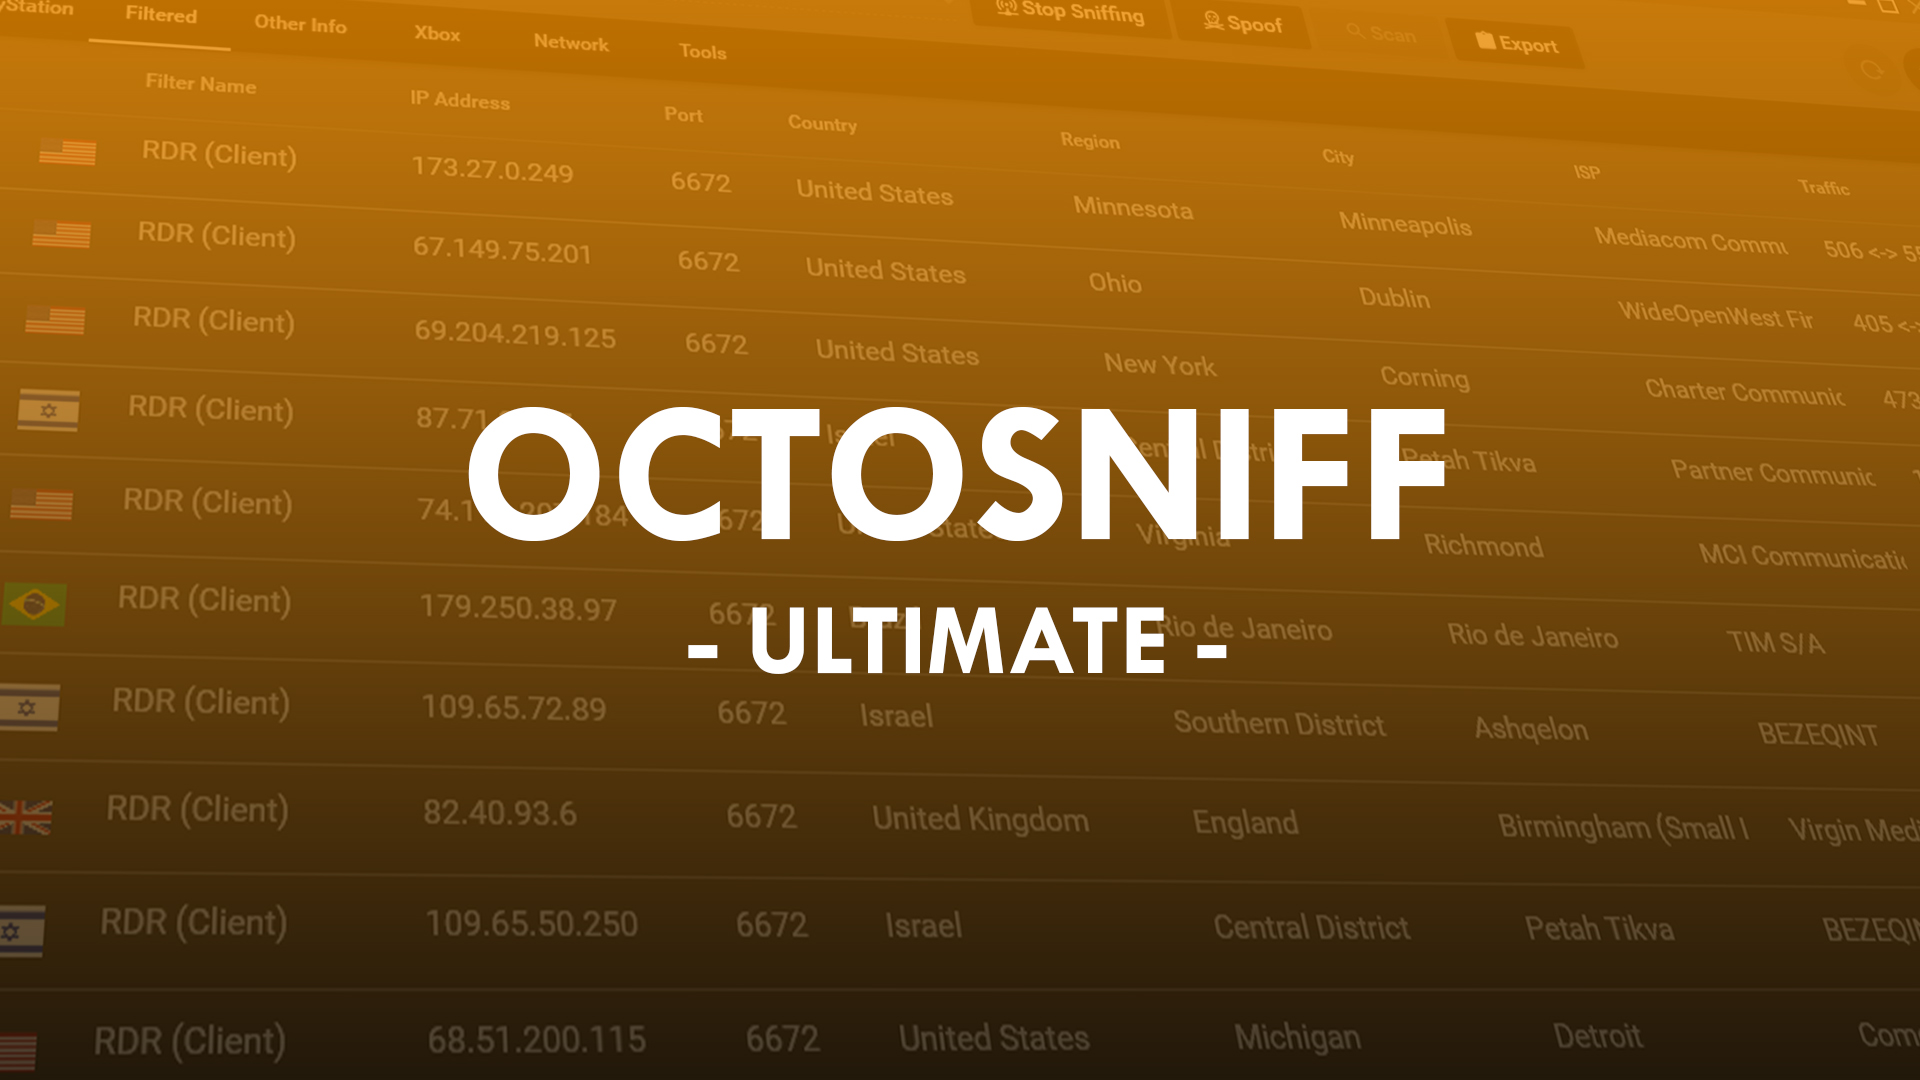 OctoSniff - The Ultimate